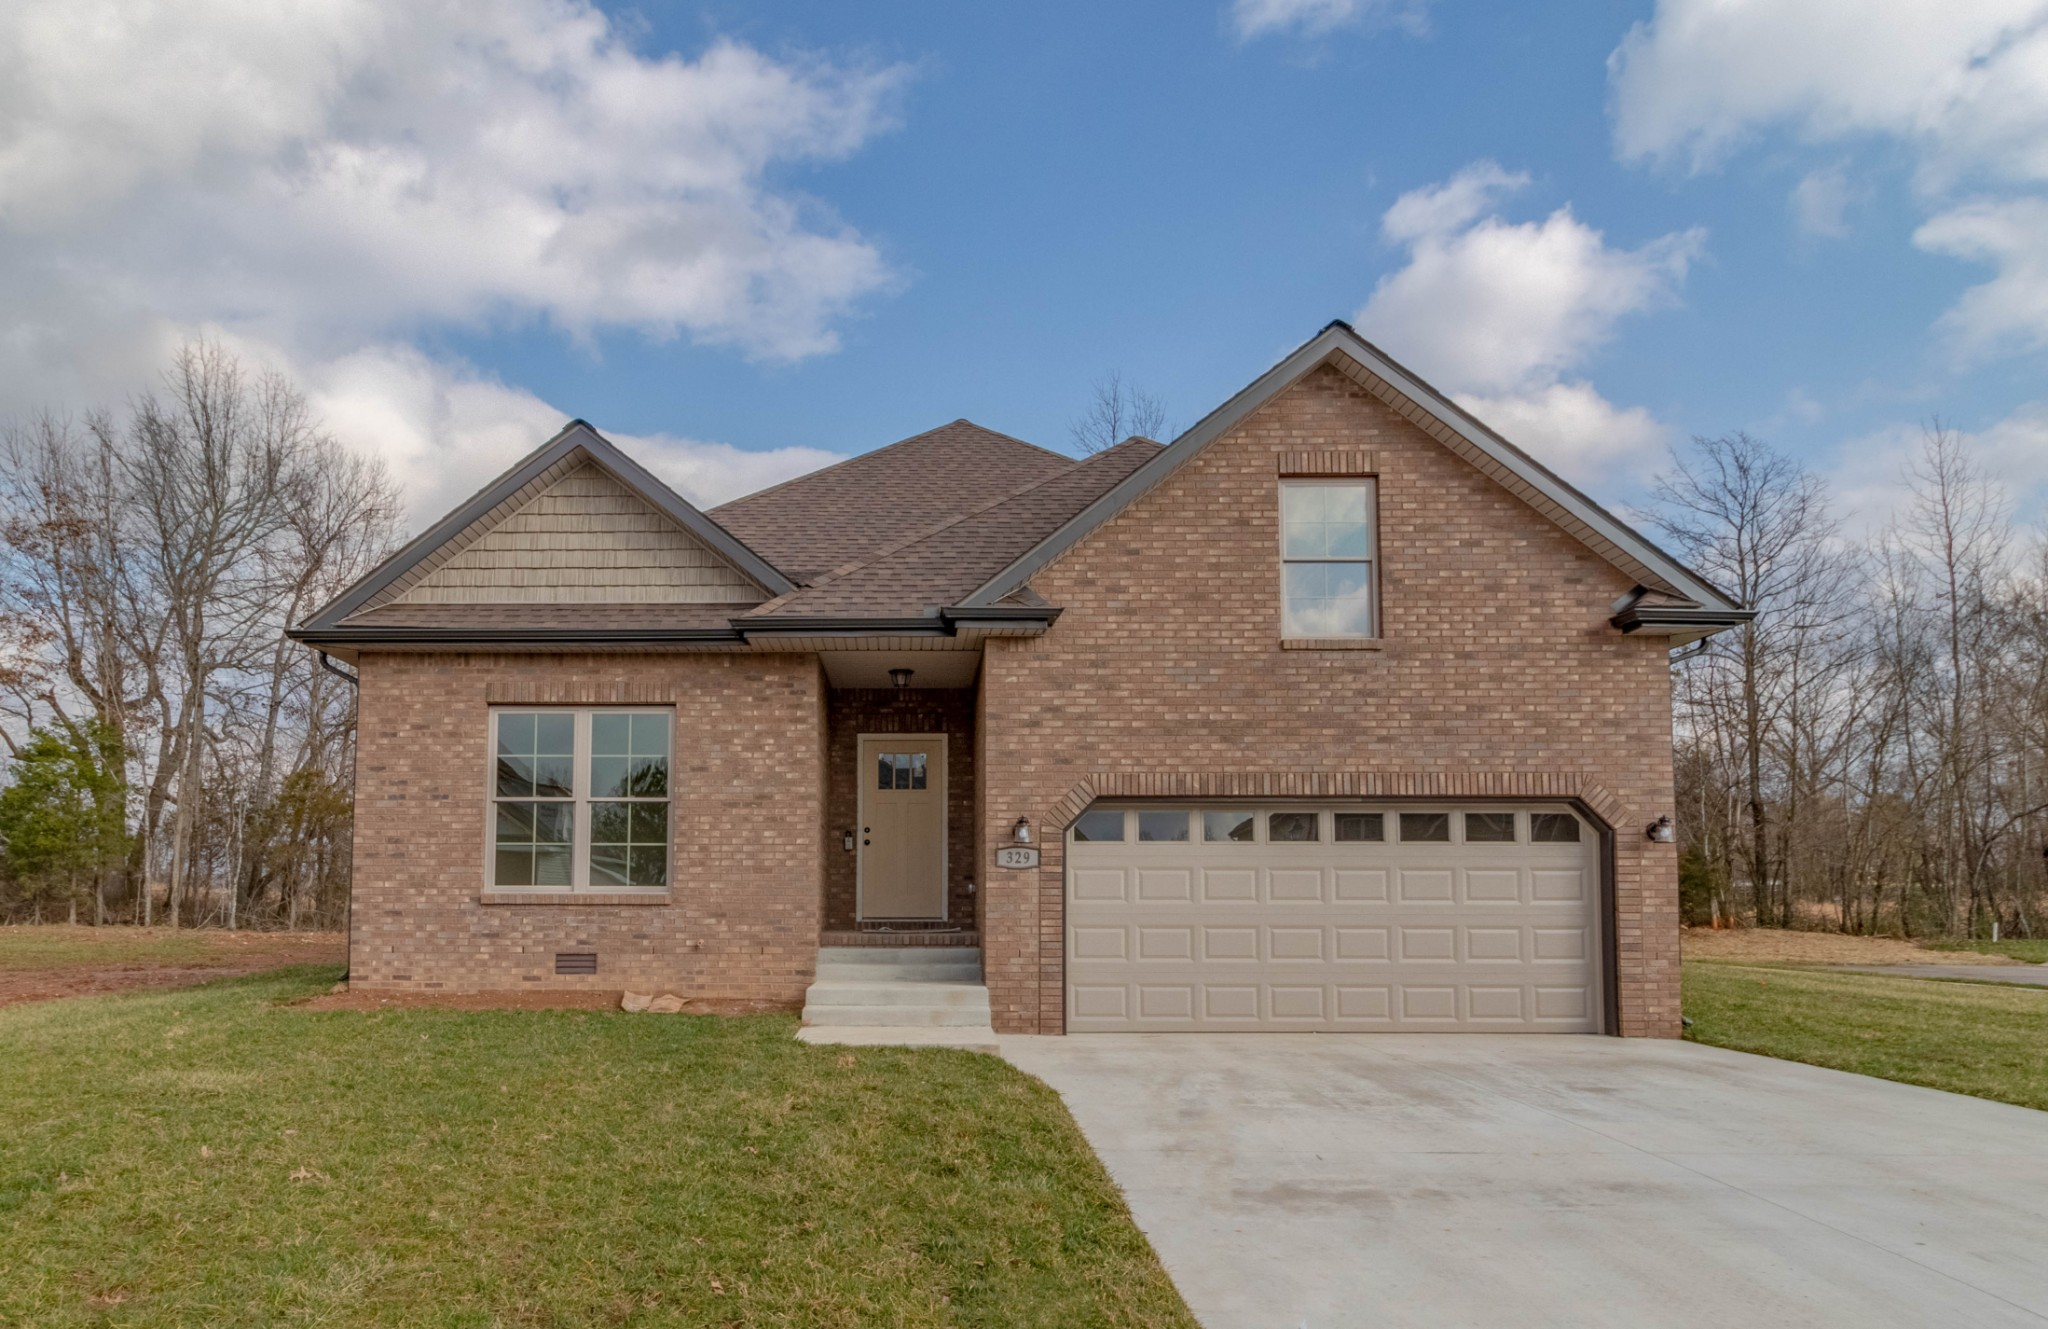 329 Chase Dr, Clarksville, TN 37043 - Clarksville, TN real estate listing